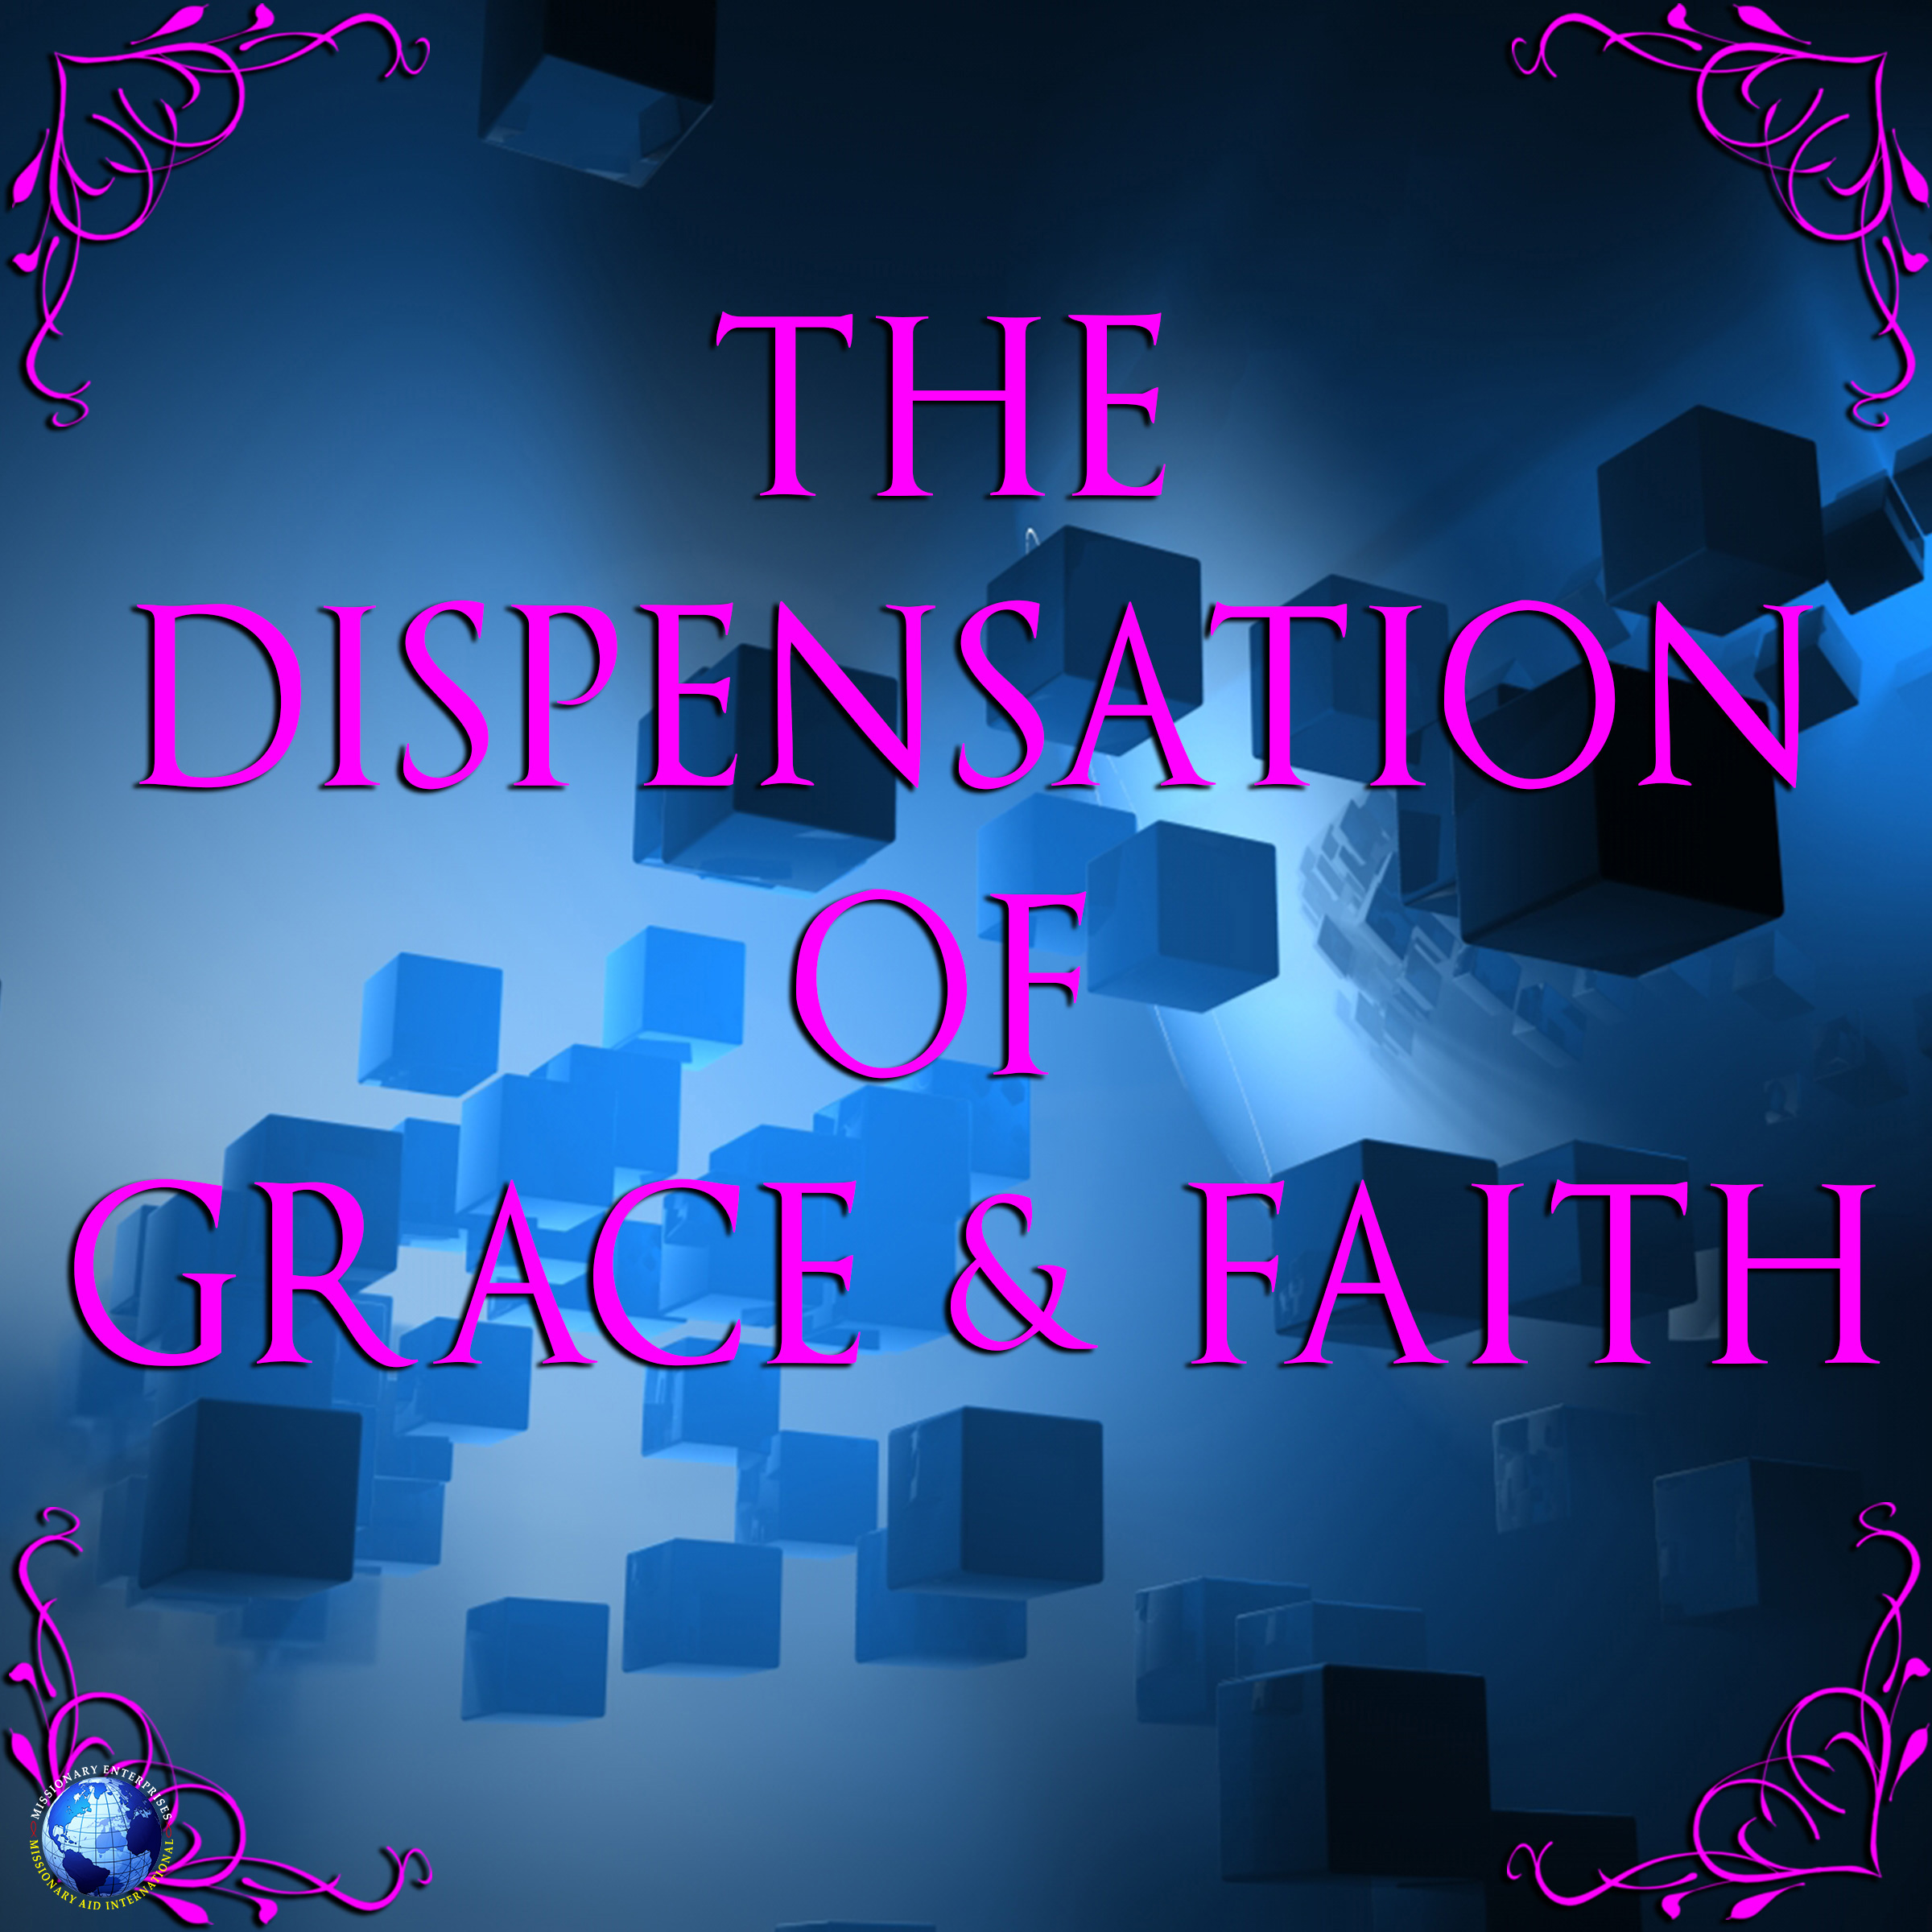 The Dispensation of Grace & Faith